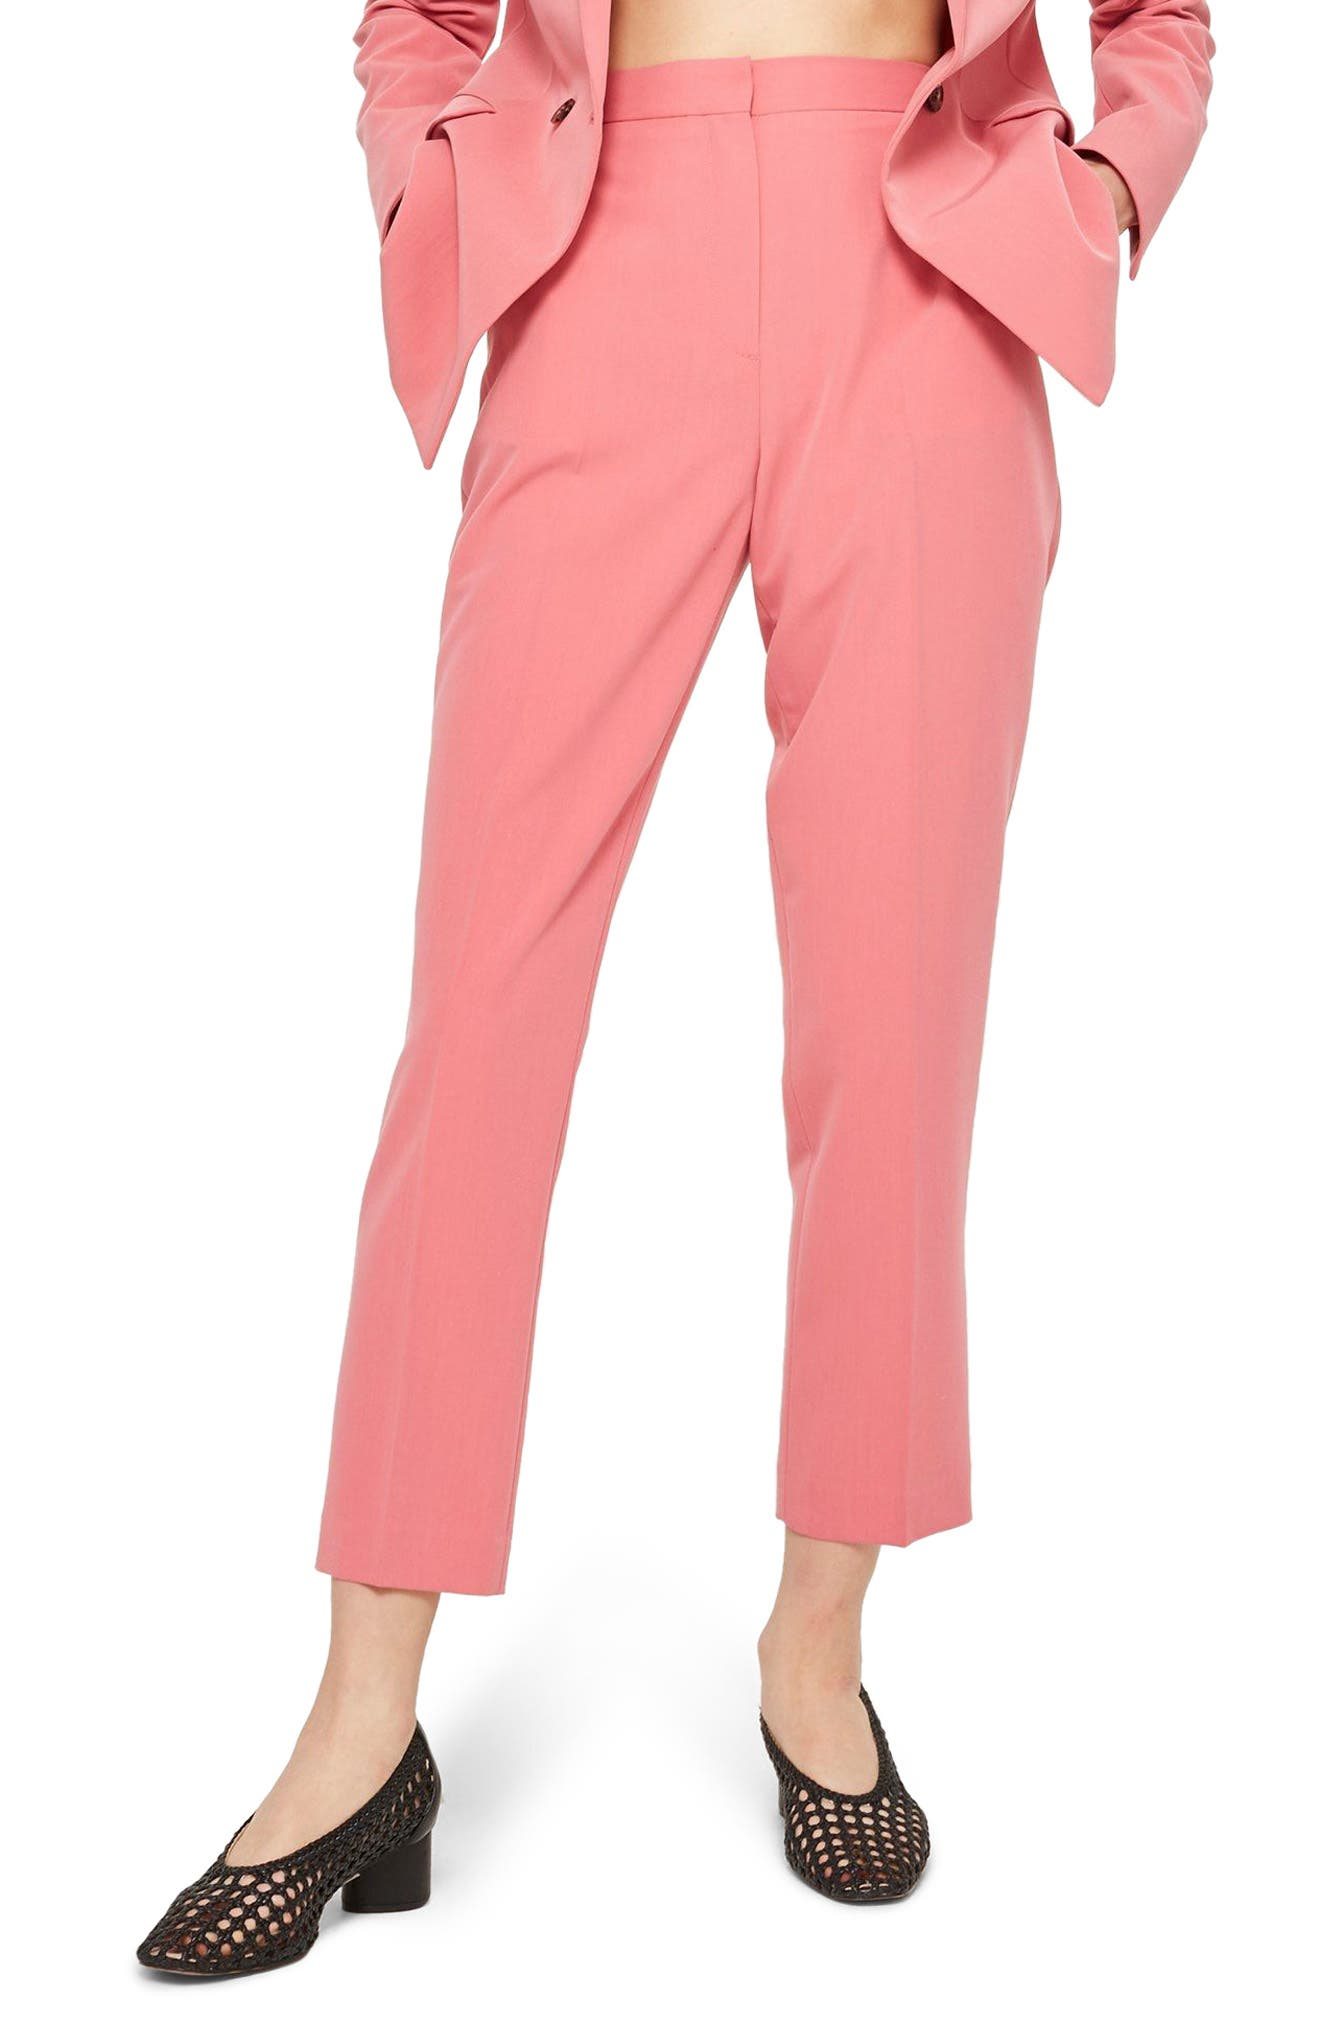 Topshop Cropped Suit Trousers